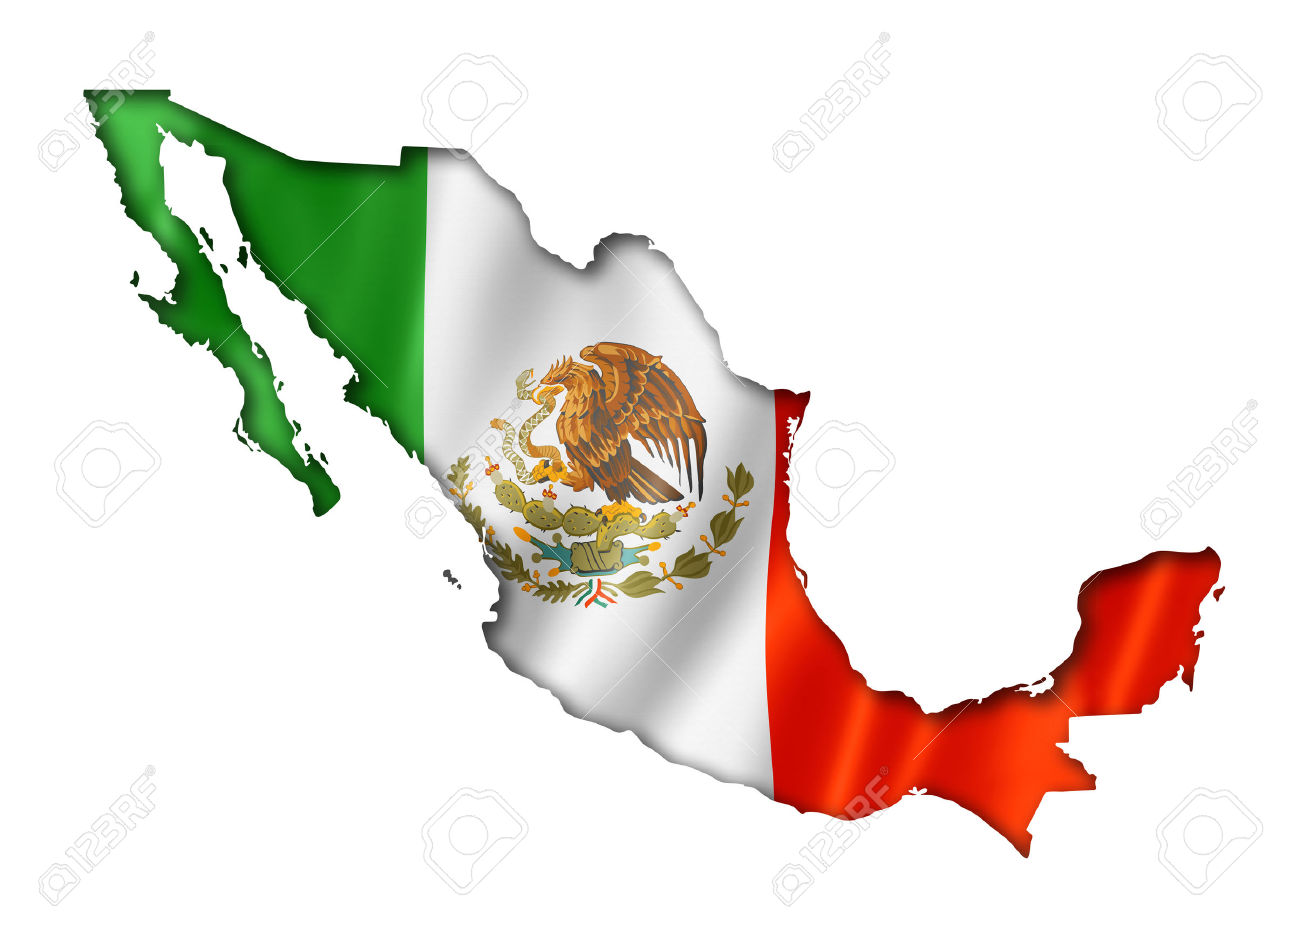 Mexican Flag Stock Photos Images. Royalty Free Mexican Flag Images.